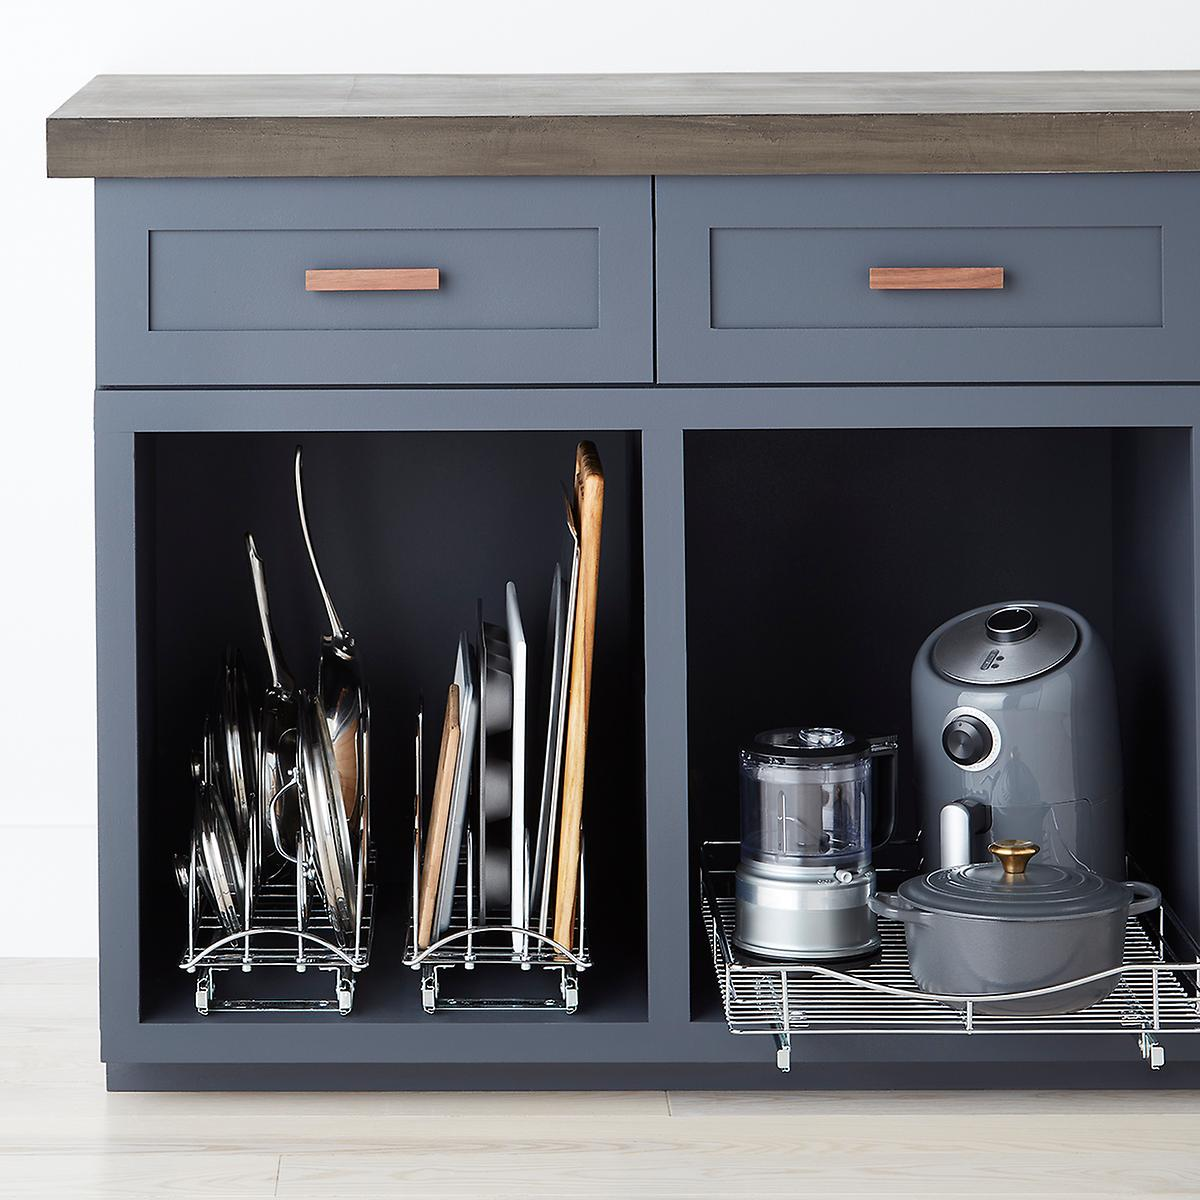 KT_20_Chrome-Cabinet-Organizers_Open